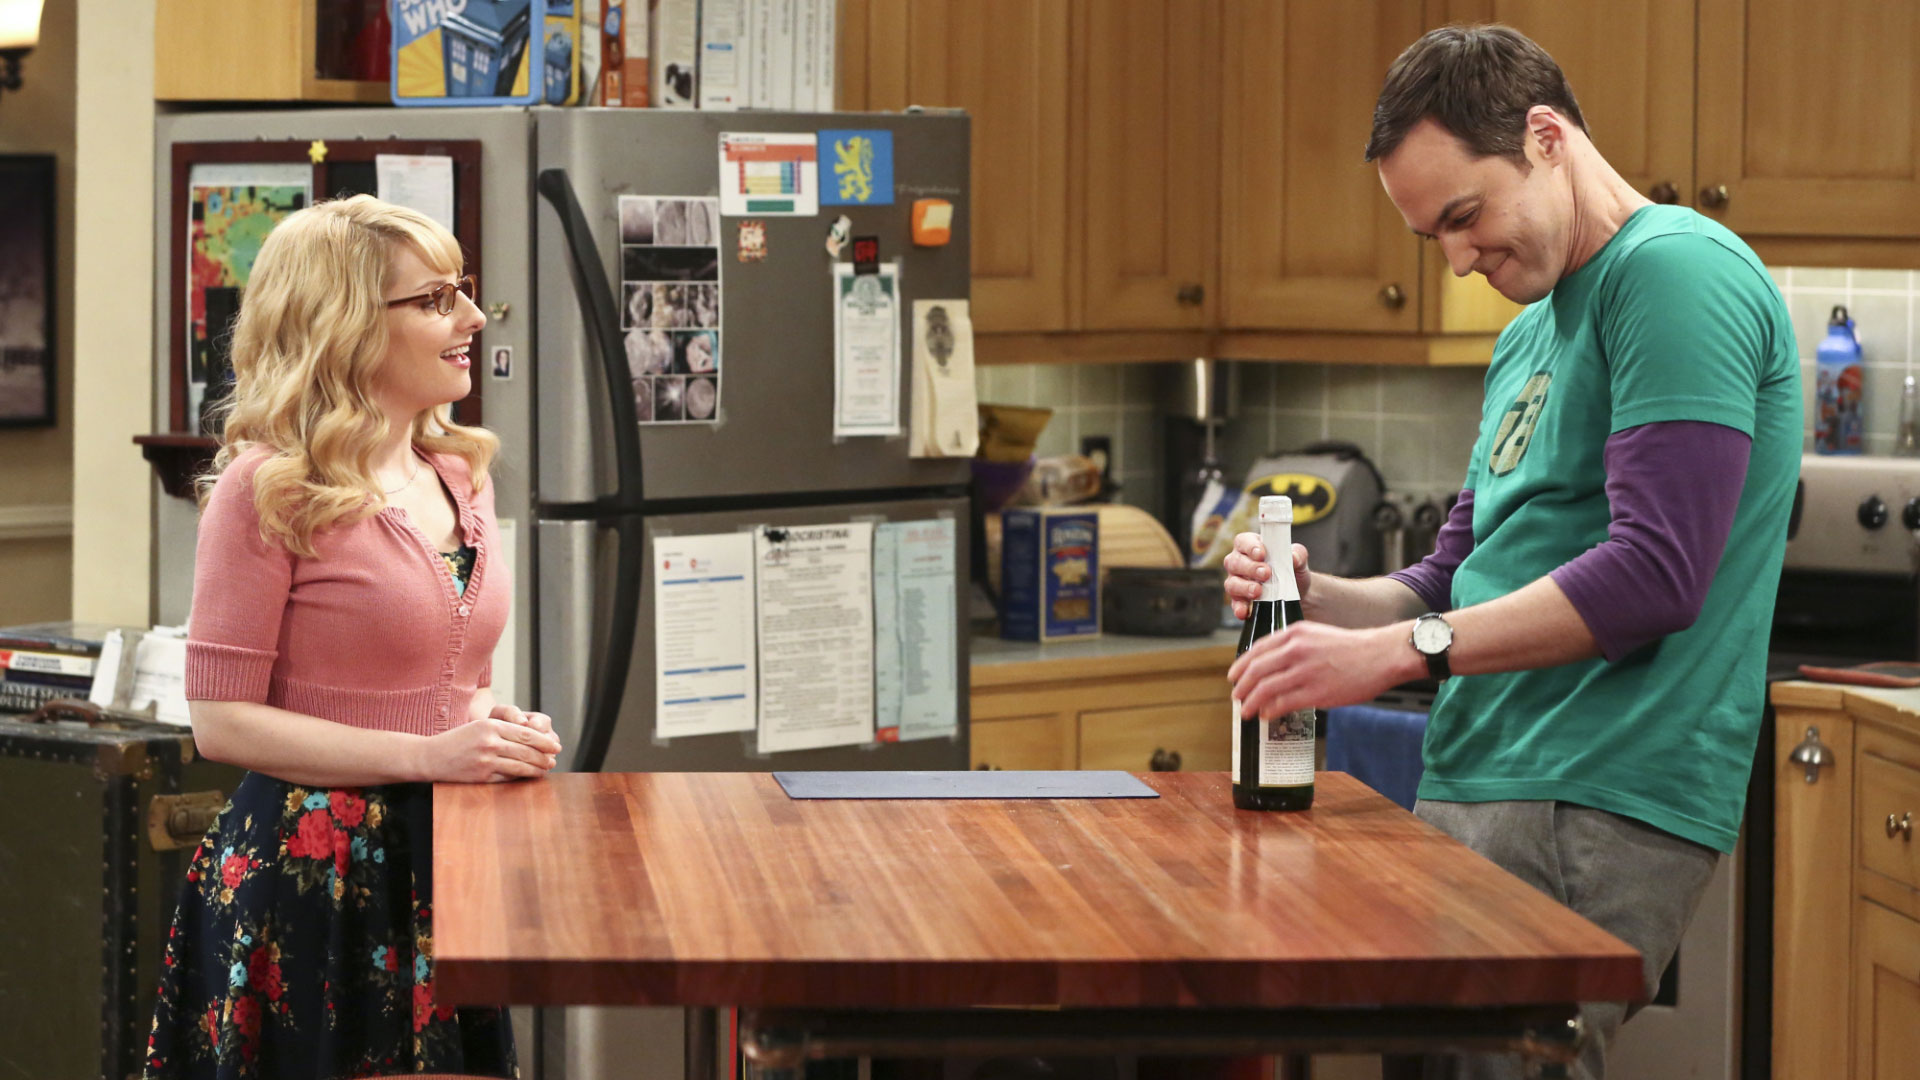 Sheldon opens a bottle of sparkling cider for Bernadette and himself.